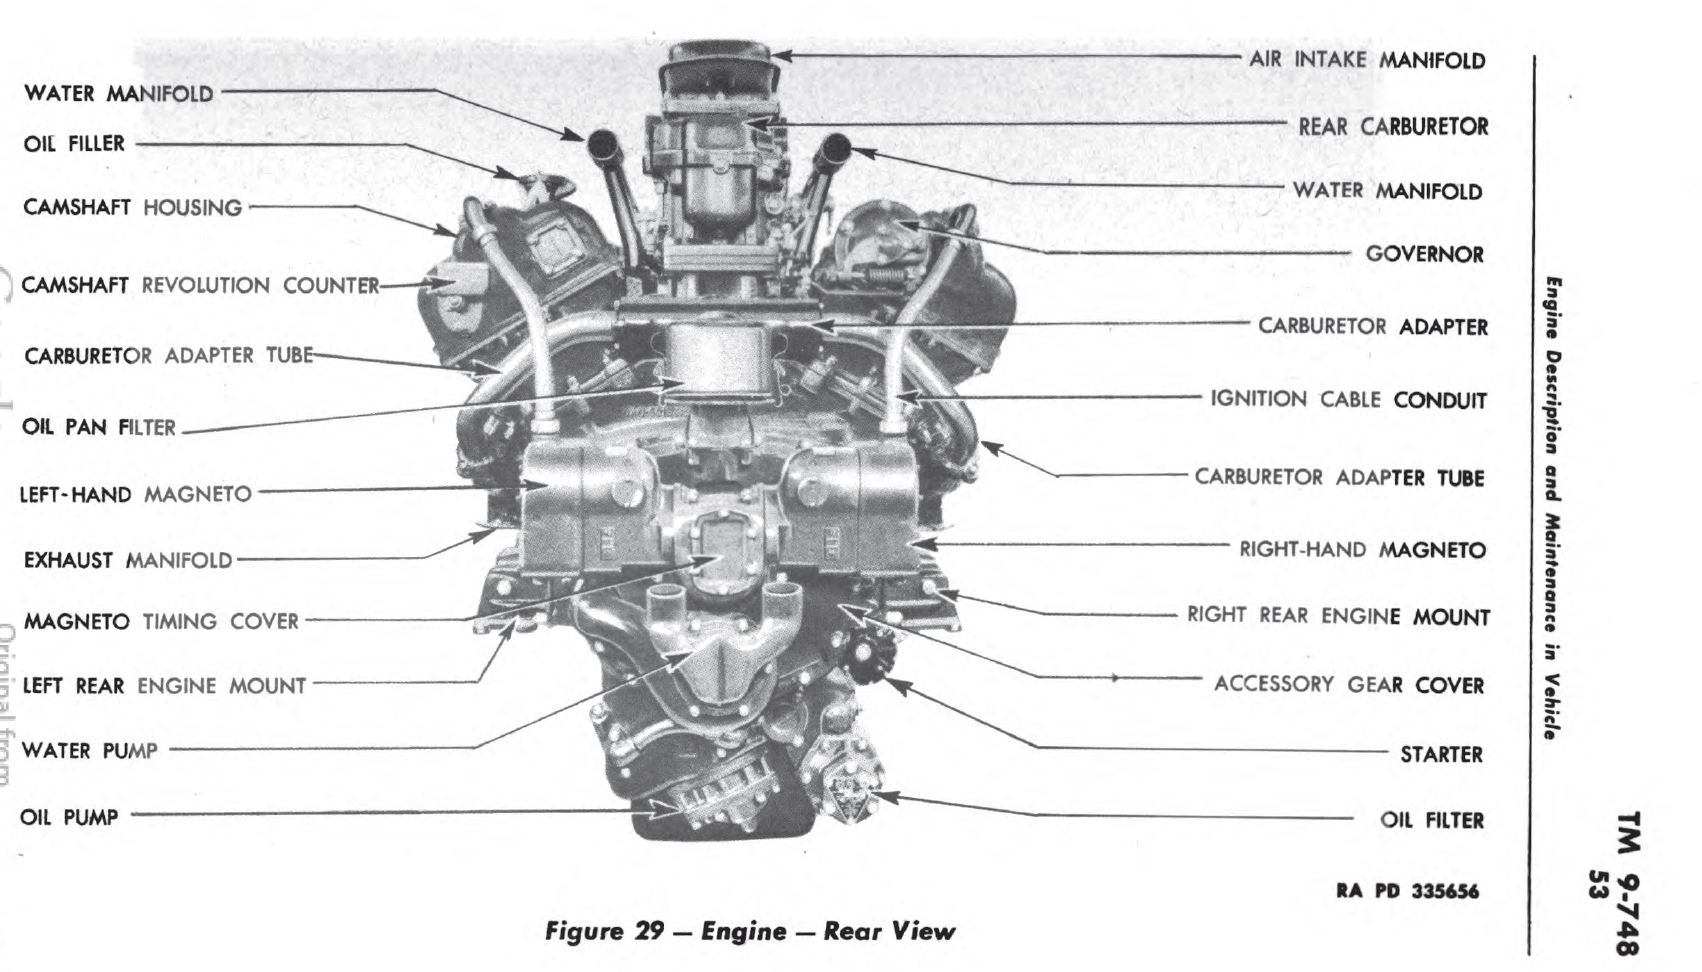 caterpillar 3208 marine engine manual